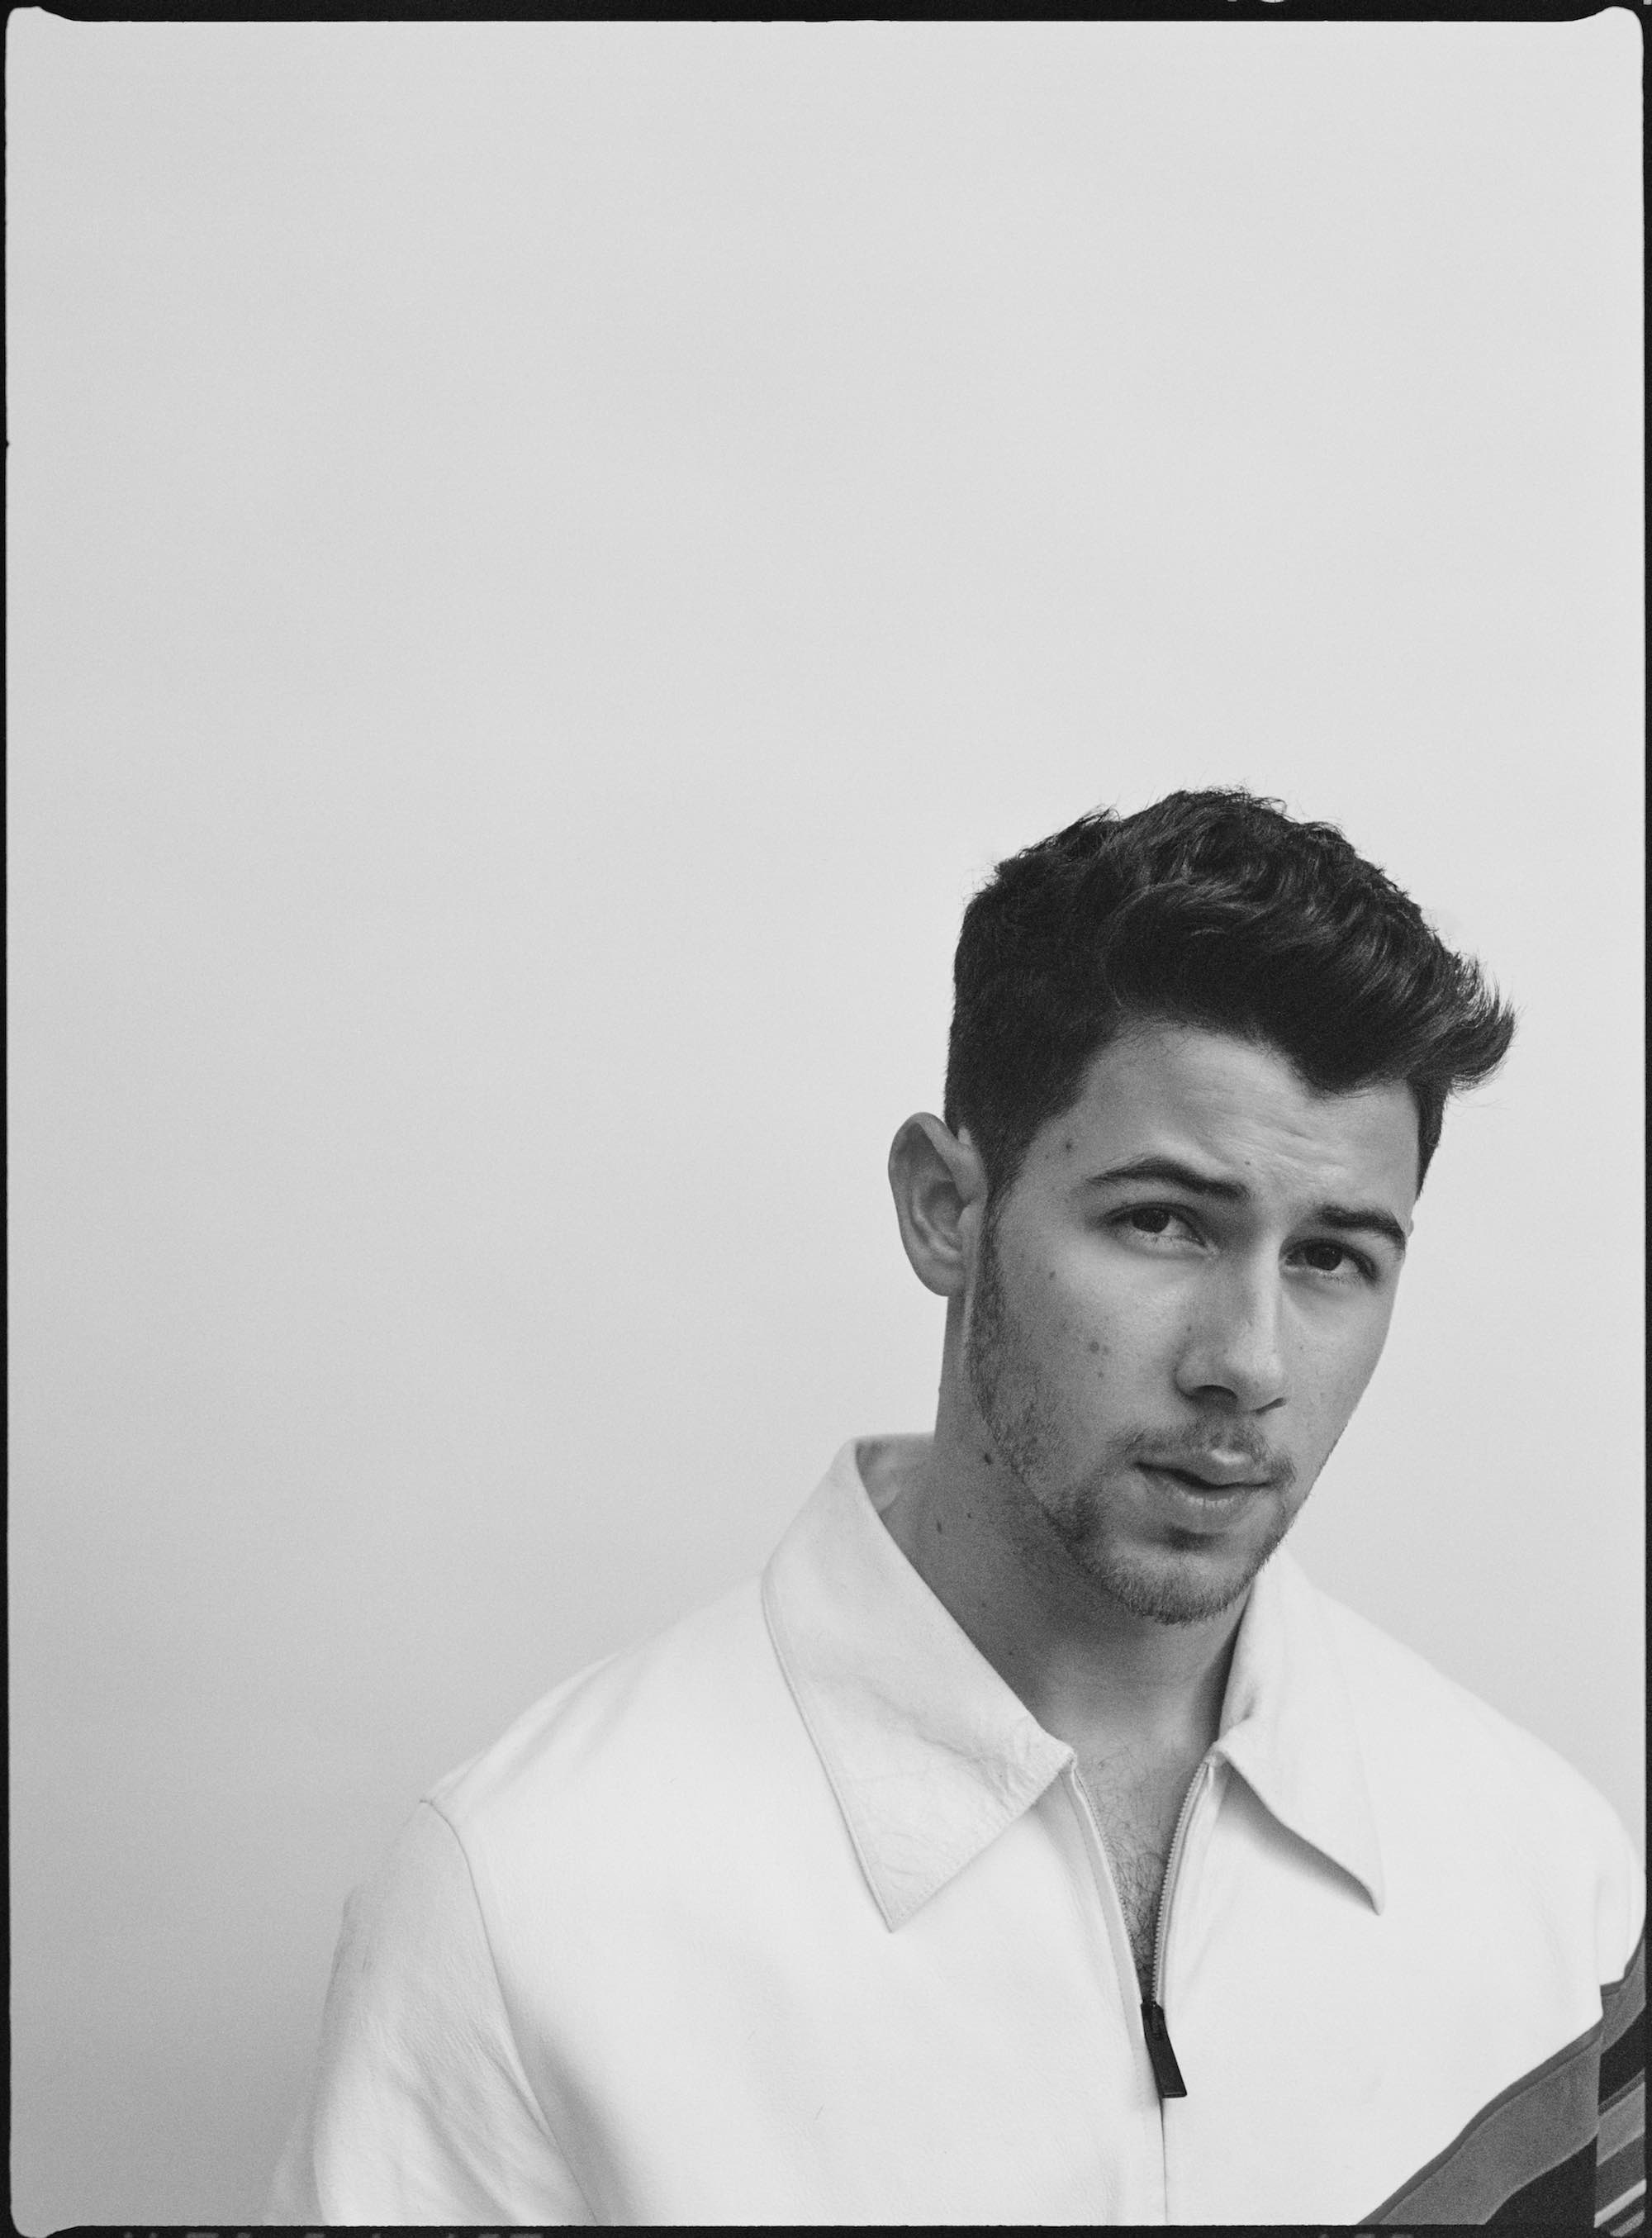 Jonas Brothers for the Summer 2019 cover of Wonderland Nick Jonas black and white